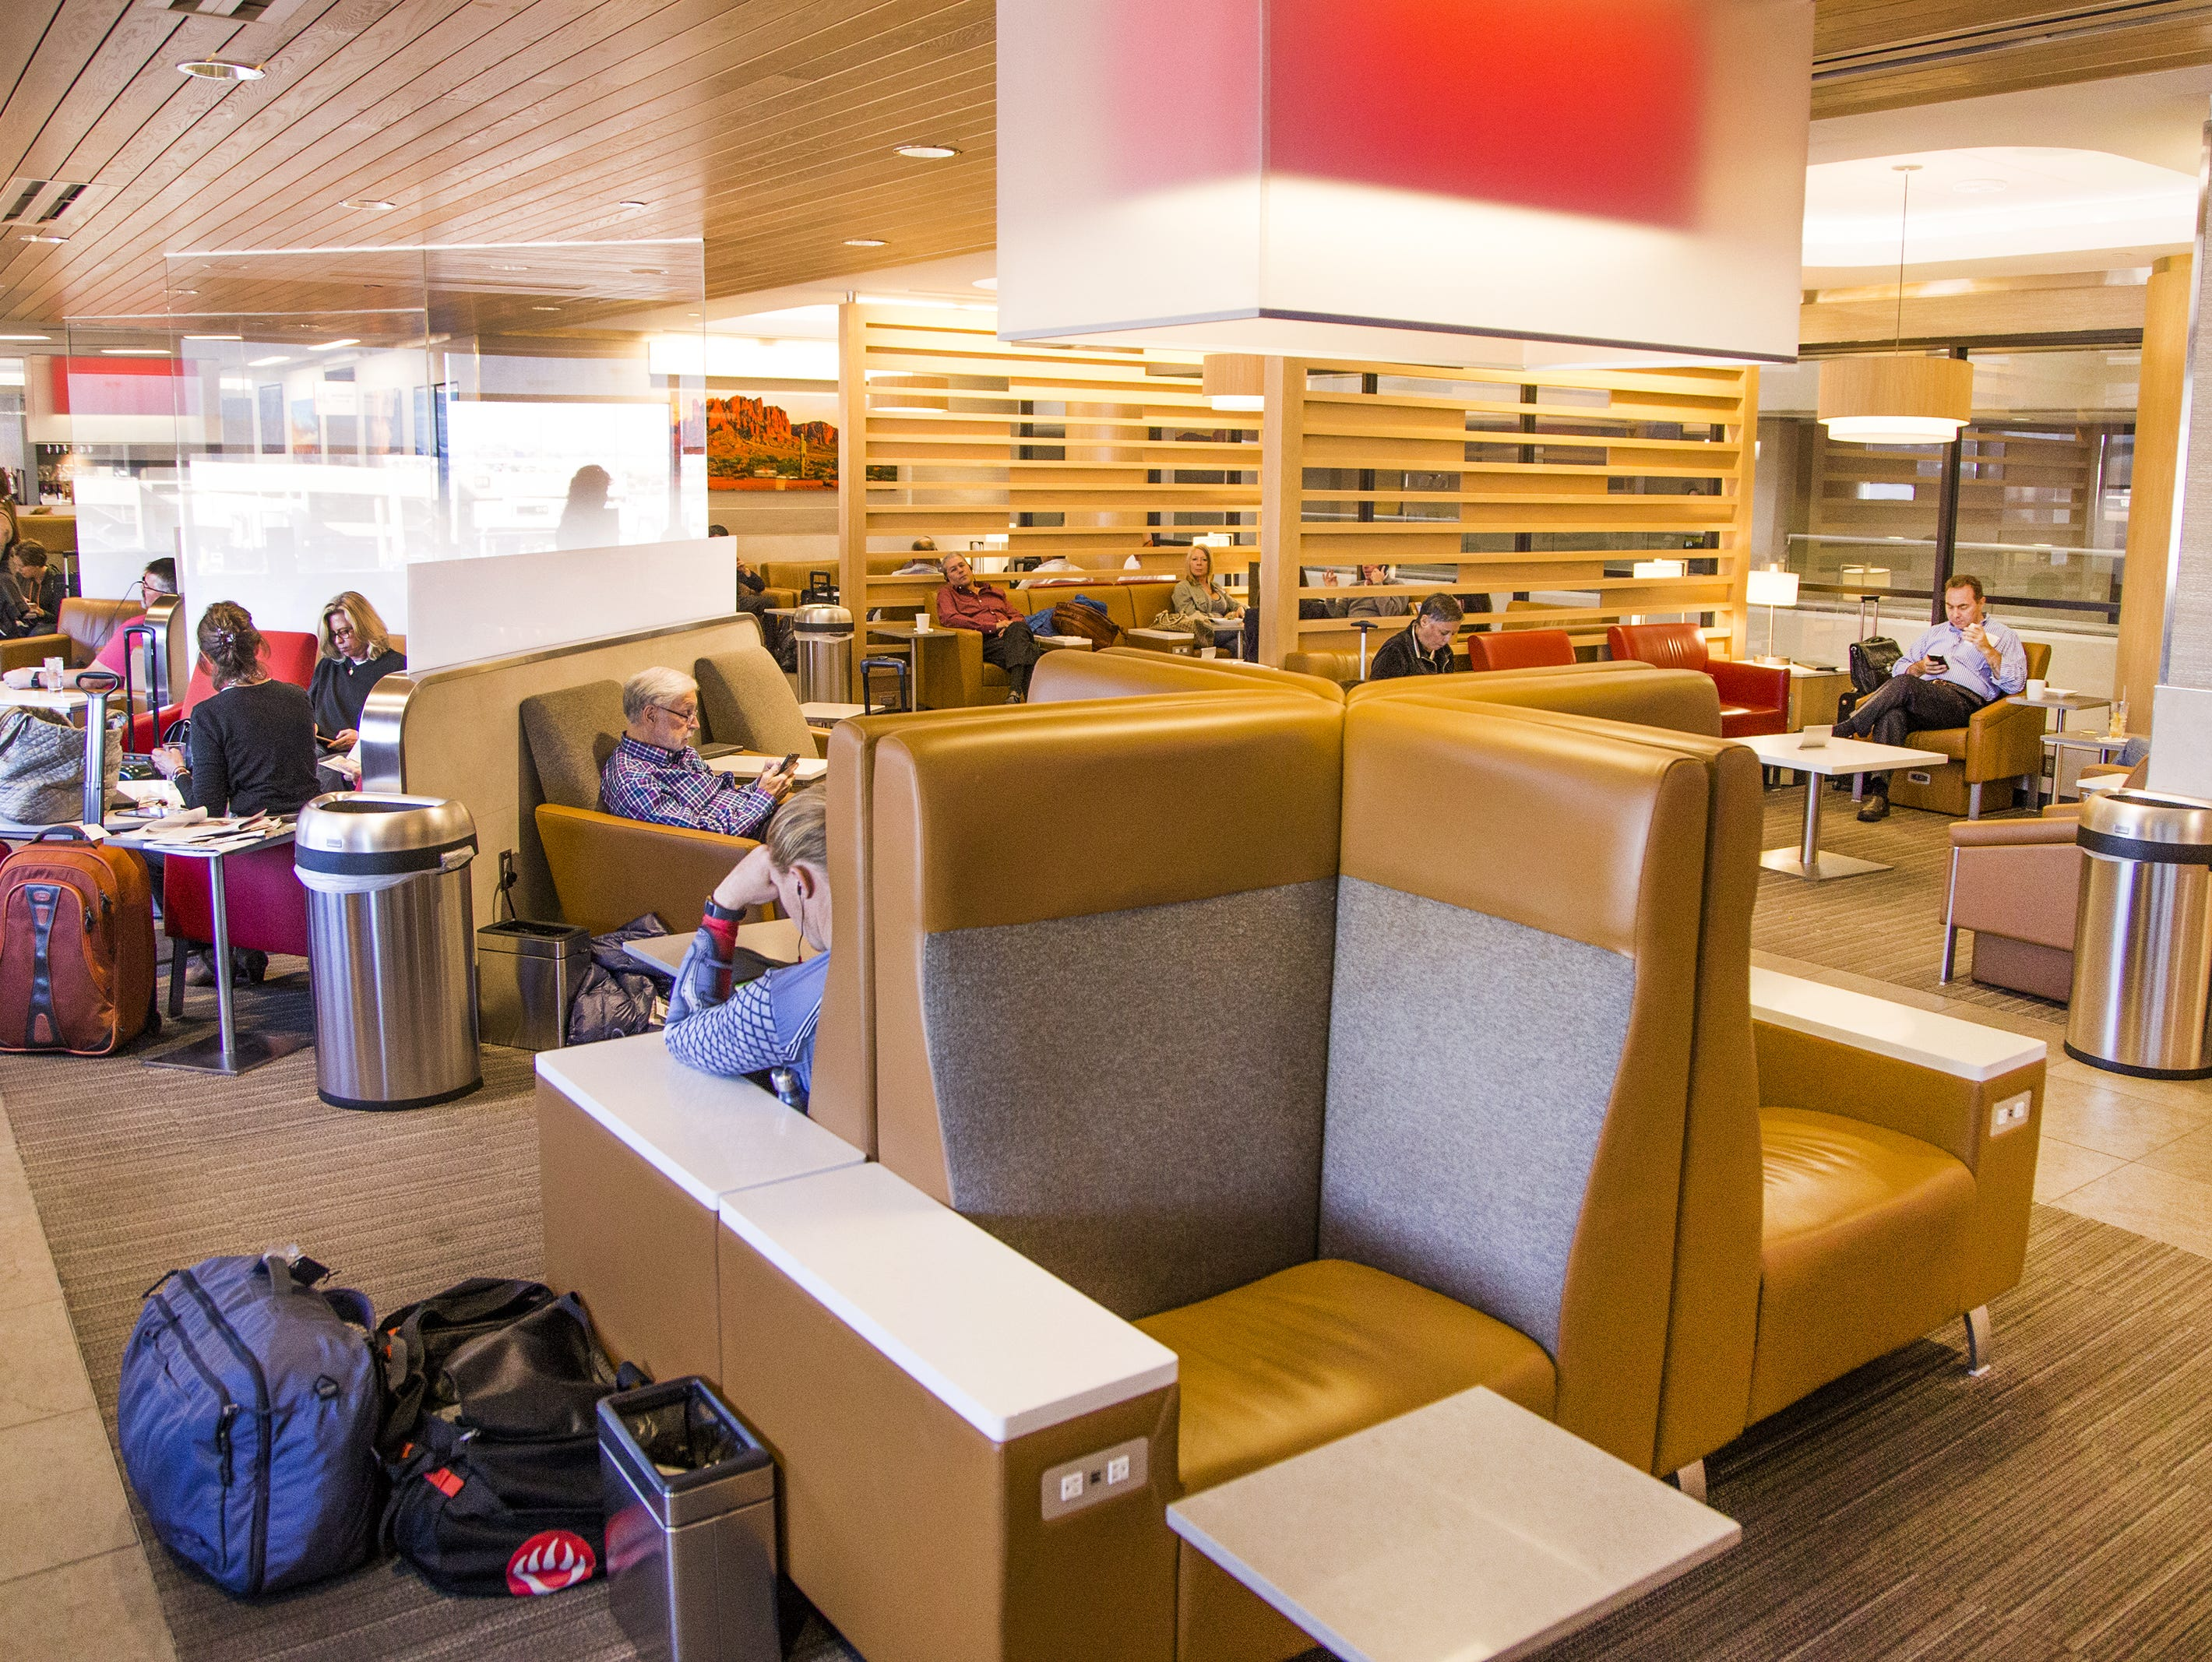 Customers relax in the American Airlines Admirals Club in Terminal 4 at Sky Harbor International Airport, Wednesday, October 31, 2018.